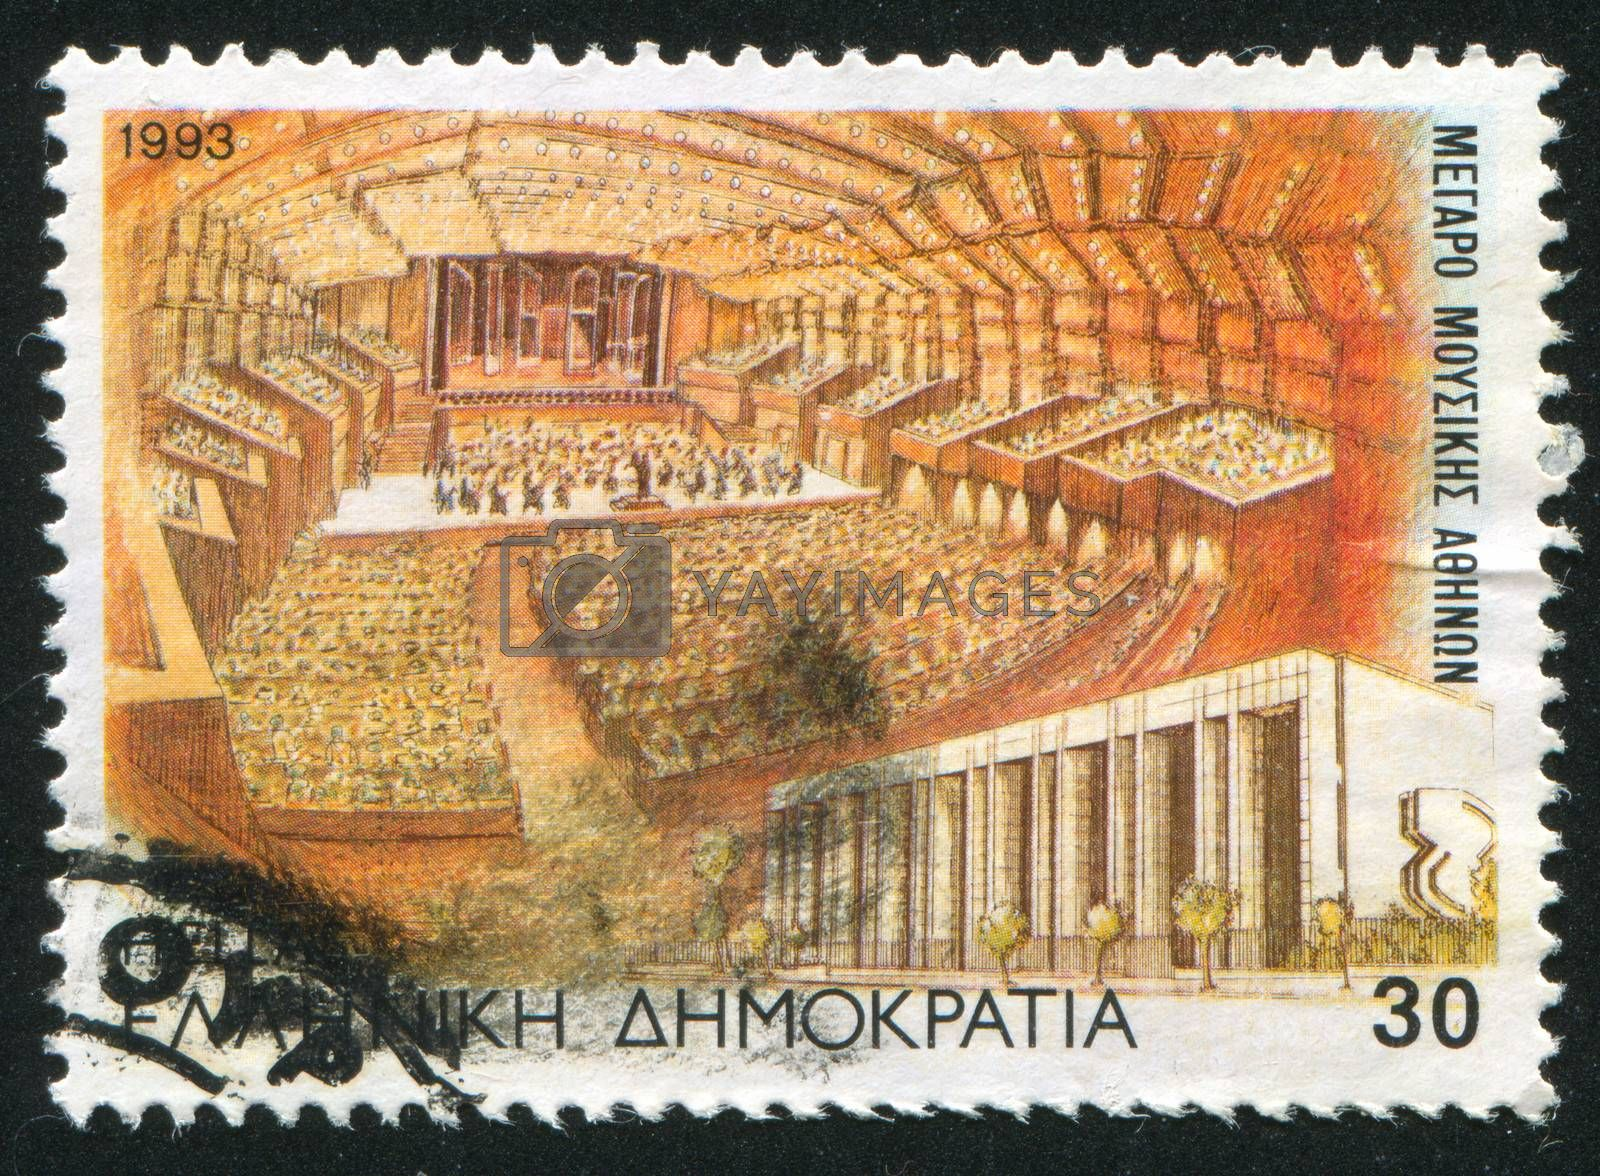 GREECE - CIRCA 1993: stamp printed by Greece, shows Concert hall, building in Athens, circa 1993